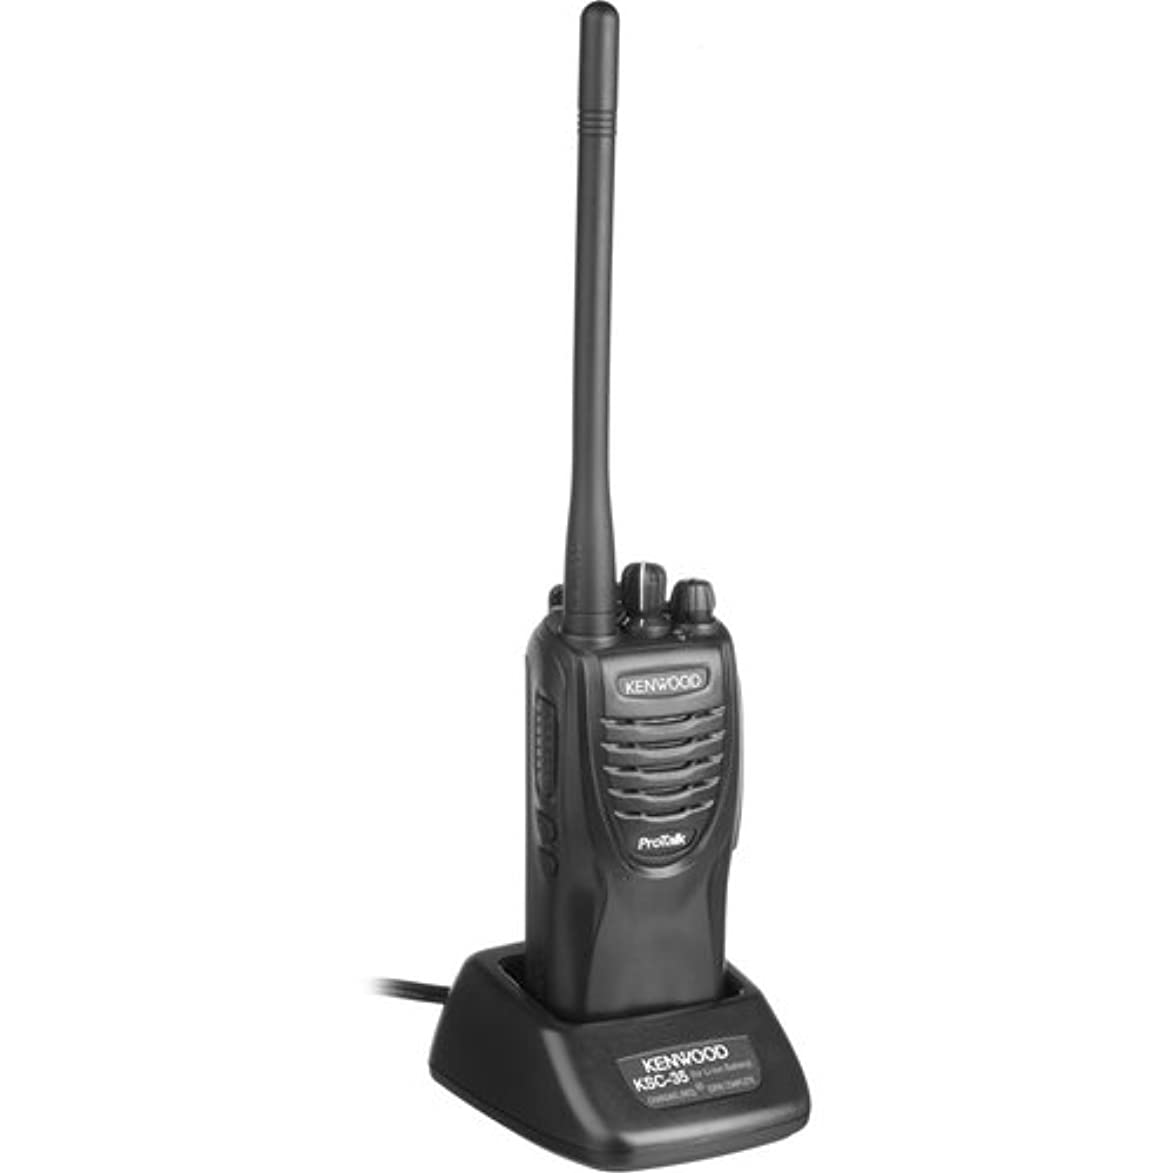 Kenwood ProTalk? TK-2300V4P 4 Channel model VHF 2 Watt Portable Business Radio, 27 VHF Pre-Programmed Frequencies